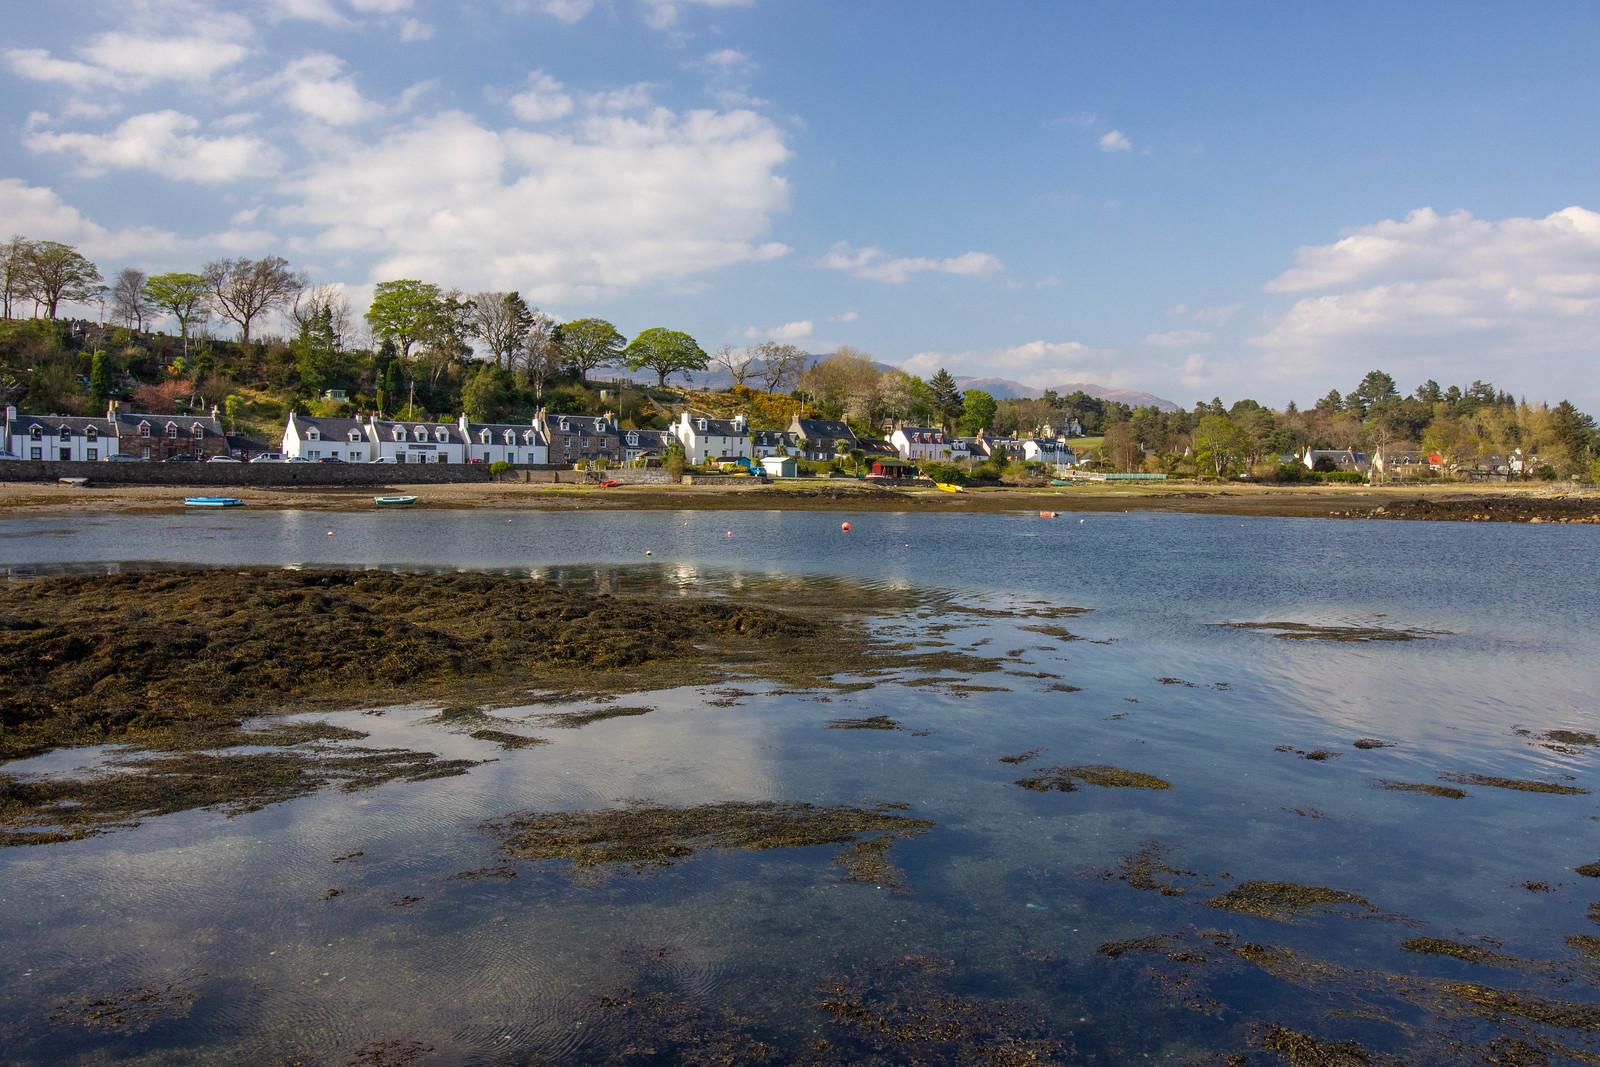 The village of Plockton from the island